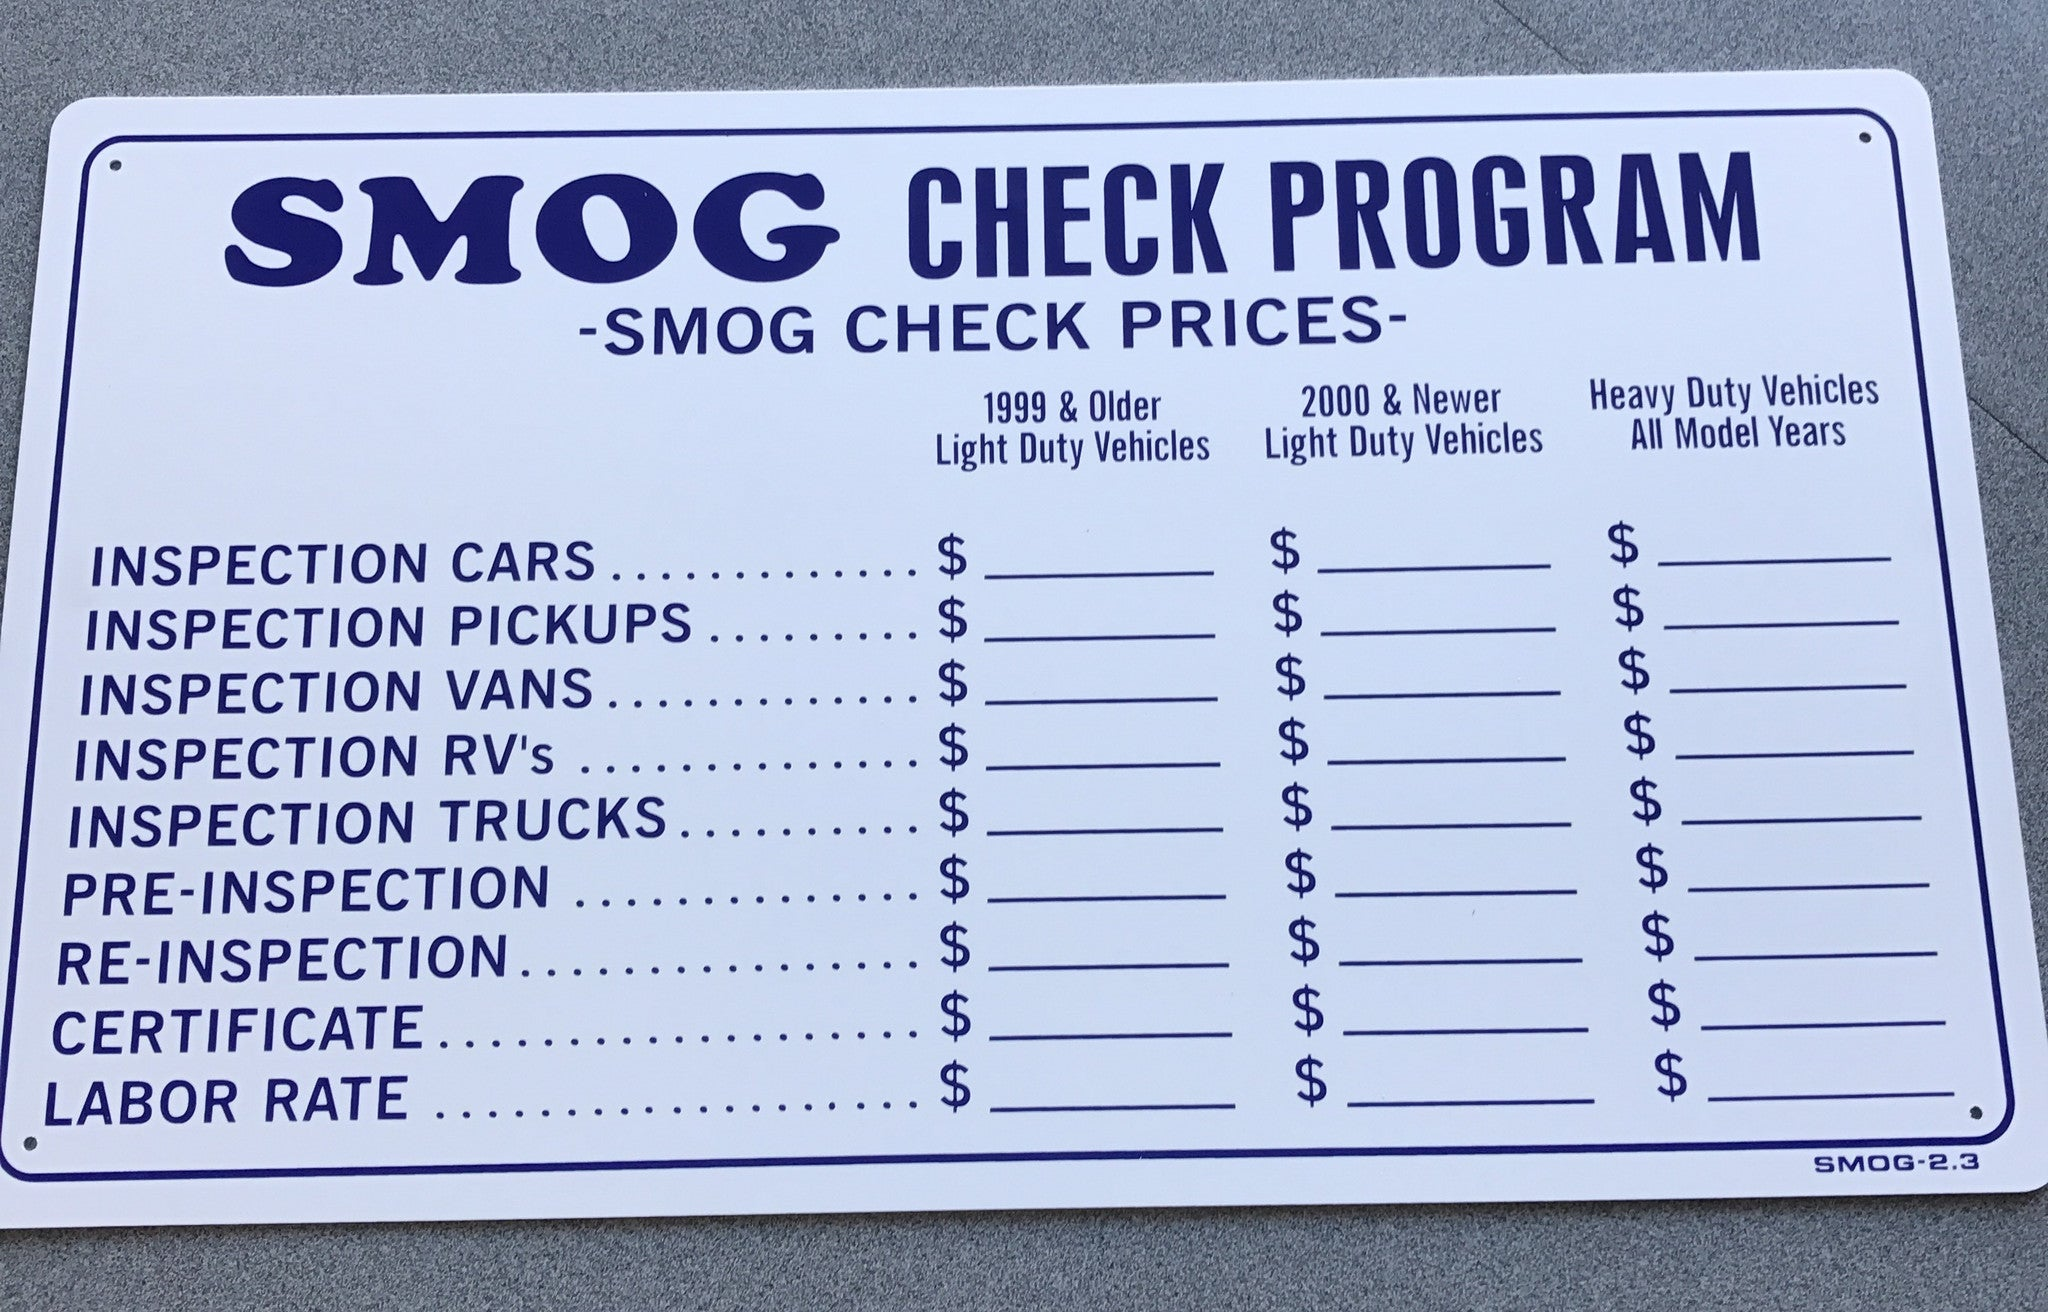 Smog check signs smogchecksupplies updated 2017 smog check prices sign xflitez Gallery